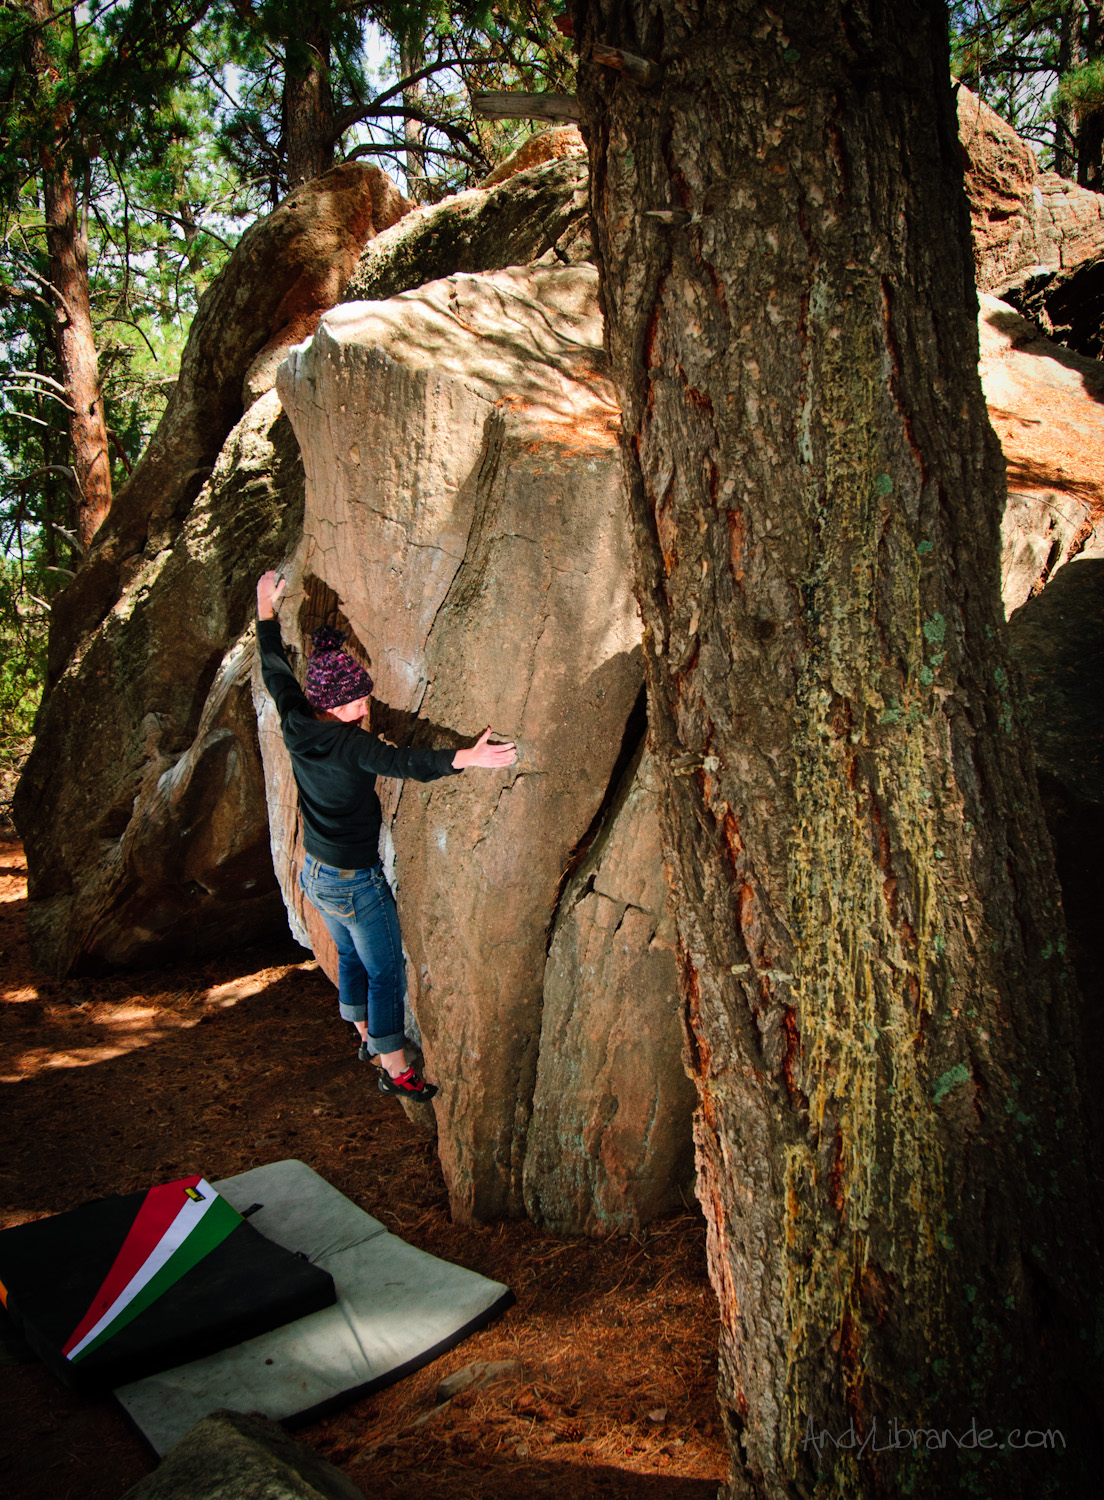 Castlewood Canyon Bouldering on Rocket Ship